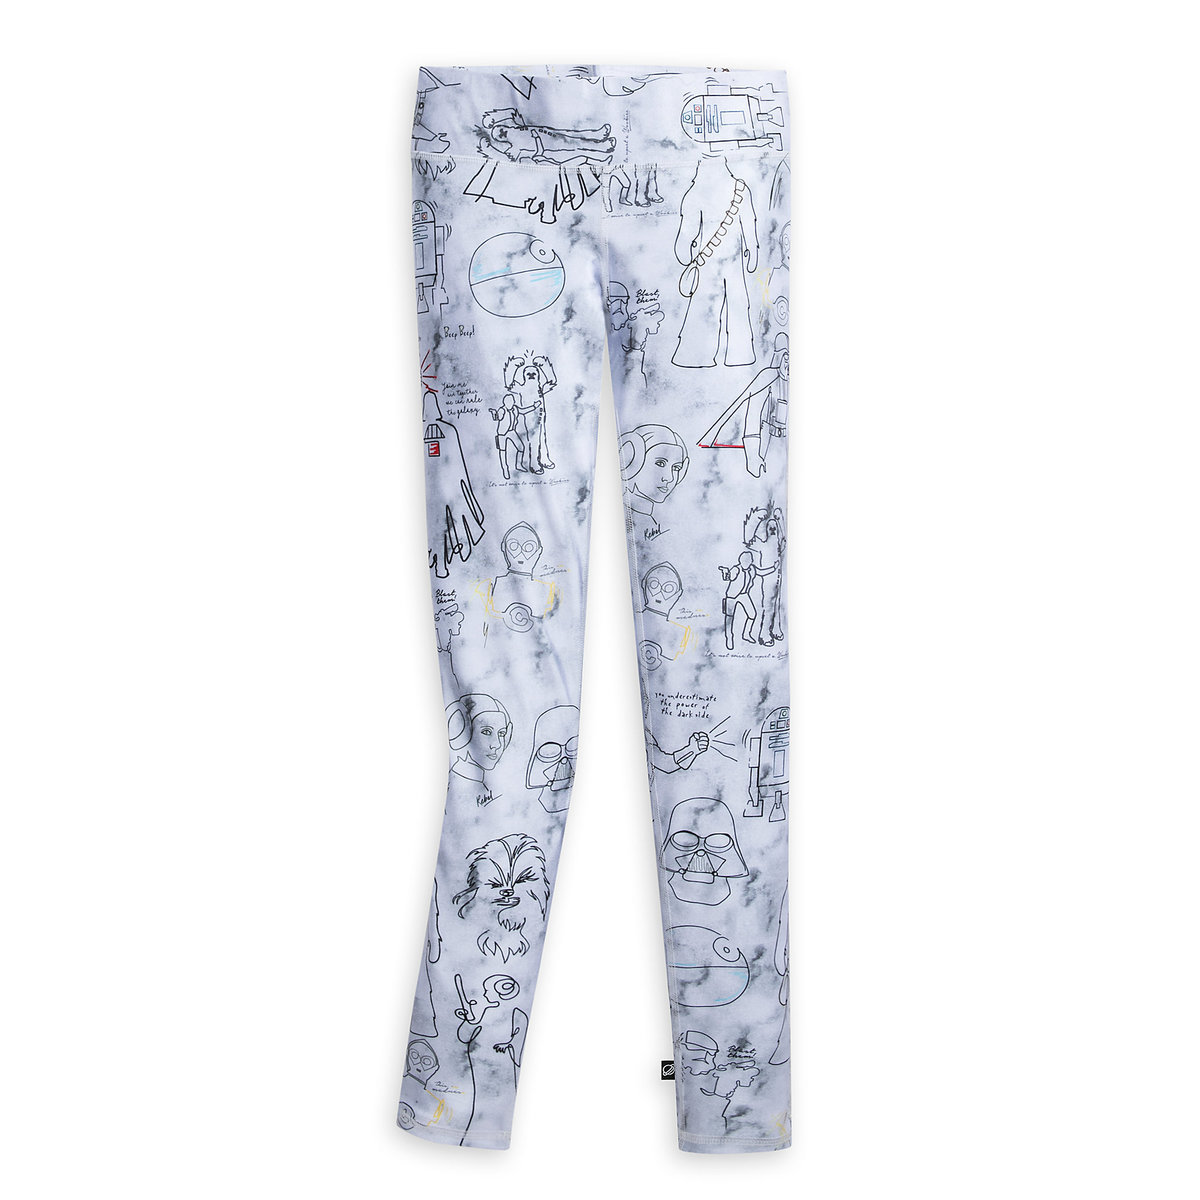 32079b1d5daee Product Image of Star Wars Sketch Leggings for Women by Terez # 1